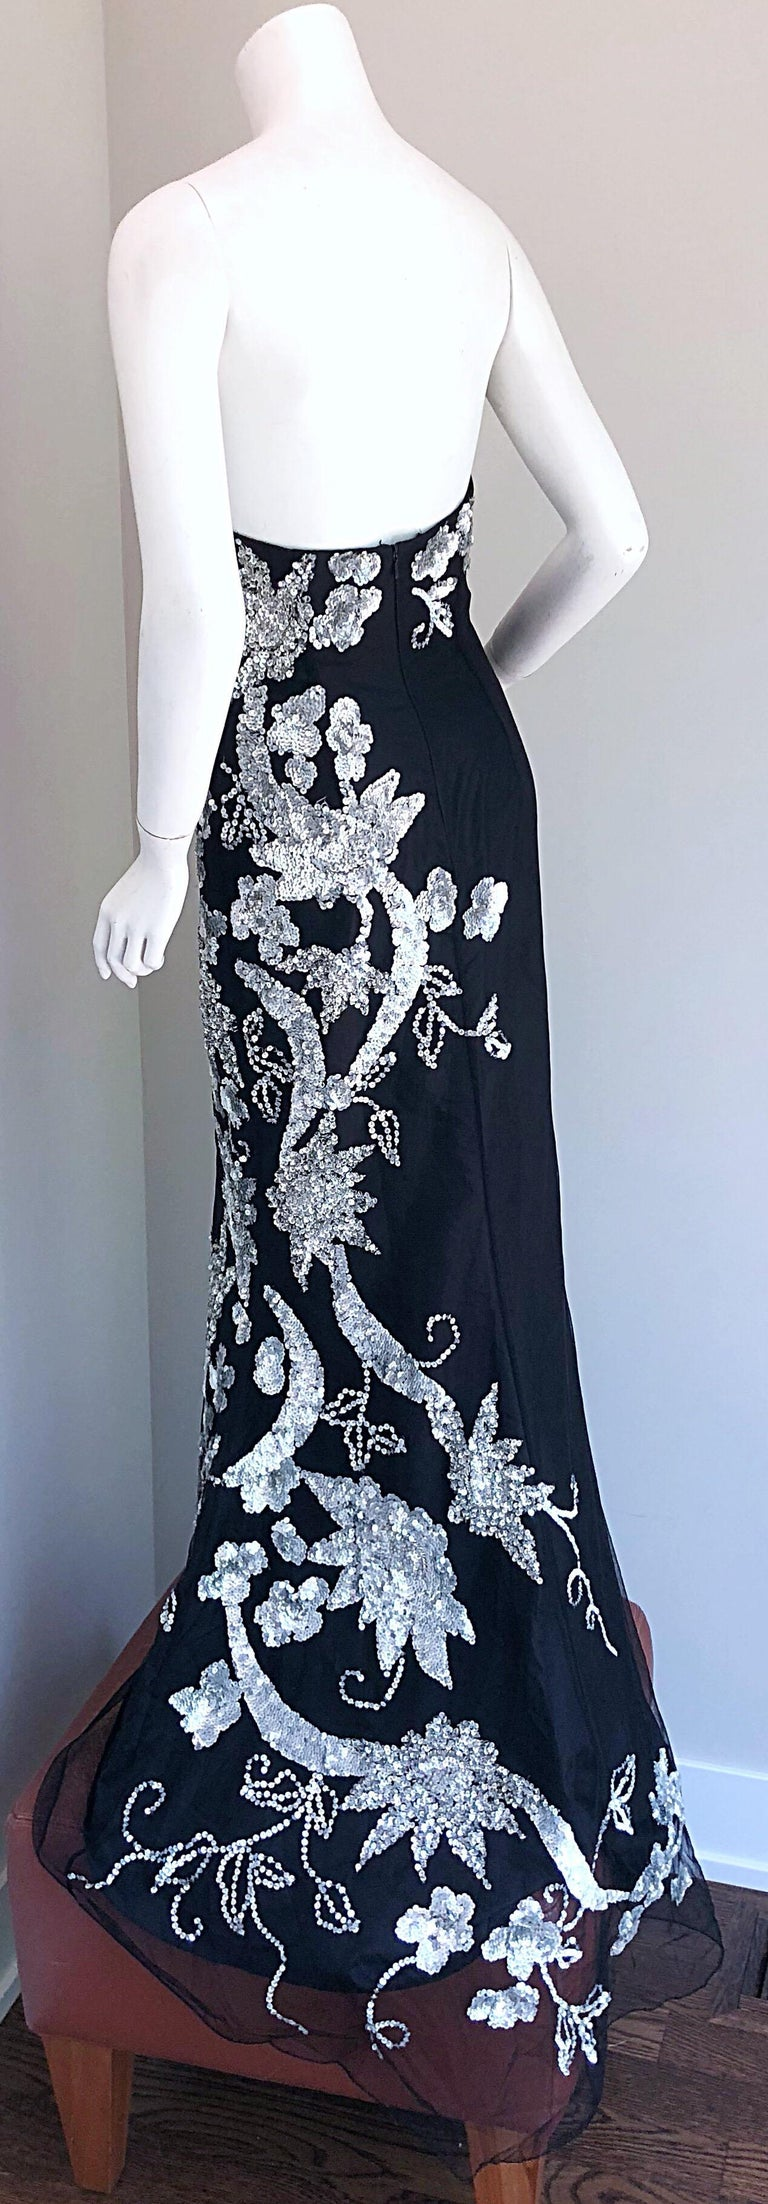 Gorgeous 1990s Black and Silver Sequined Dramatic Strapless Vintage 90s Gown  6